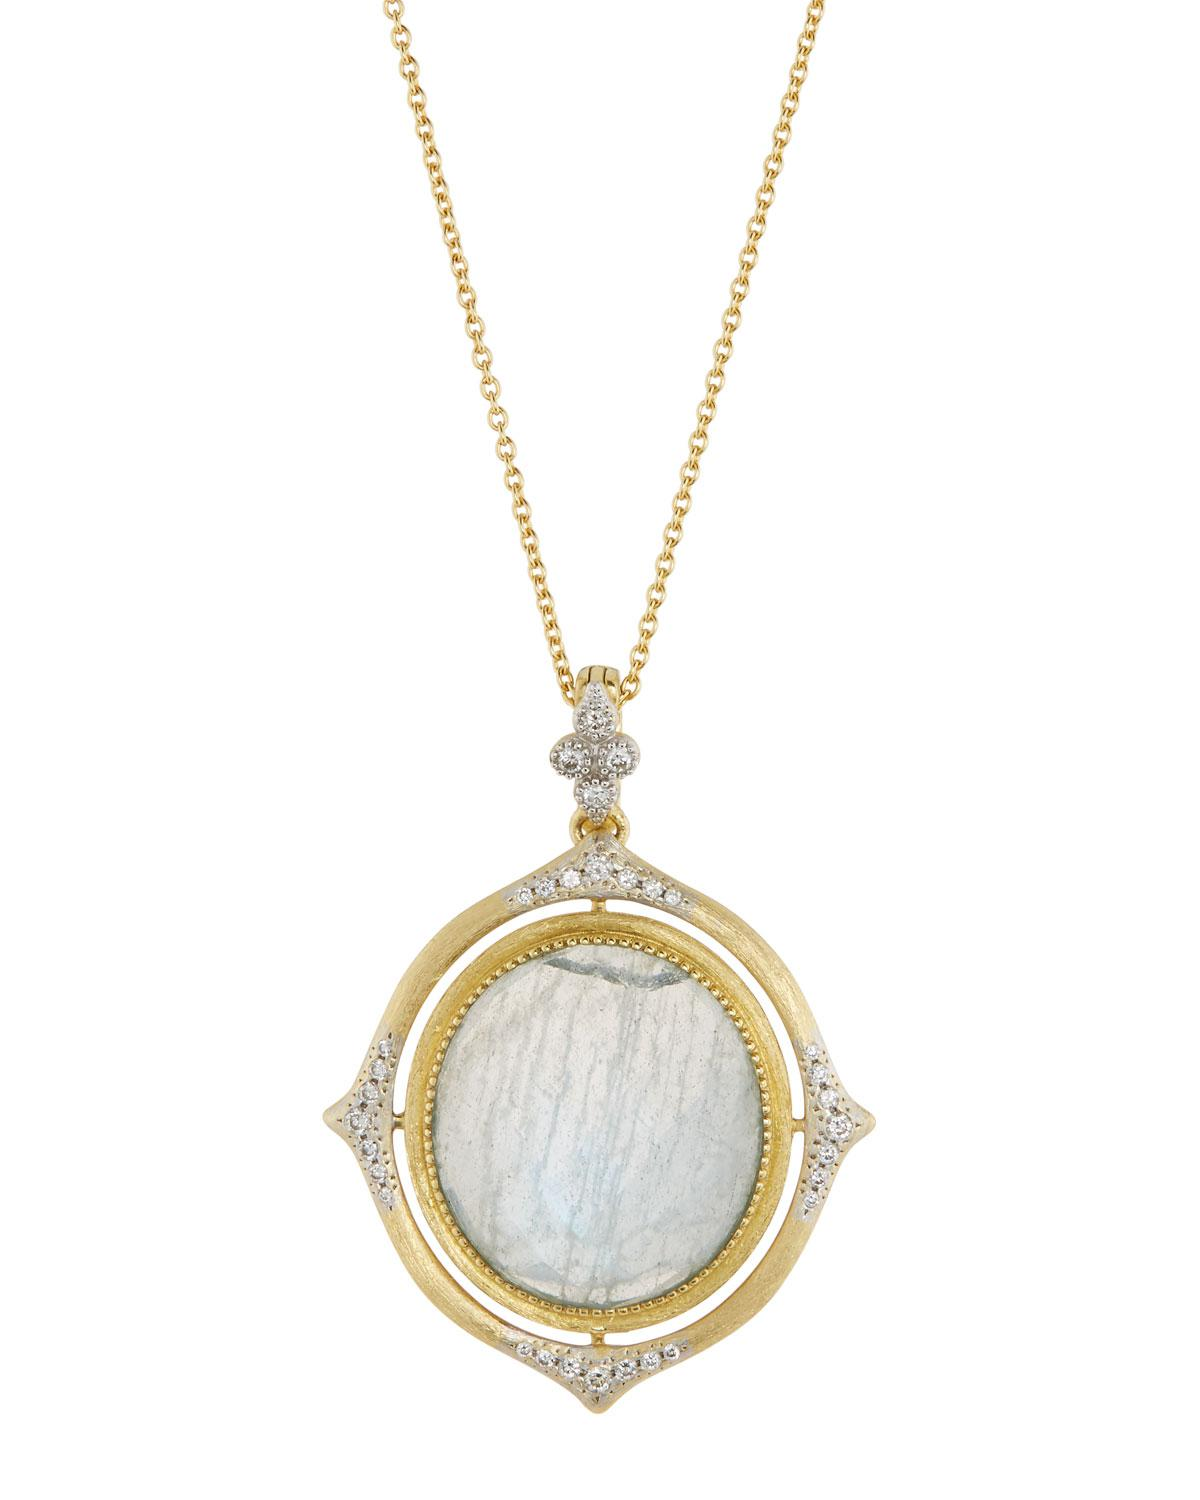 Jude Frances Moroccan Oval Pendant Necklace, Amazonite/Moonstone